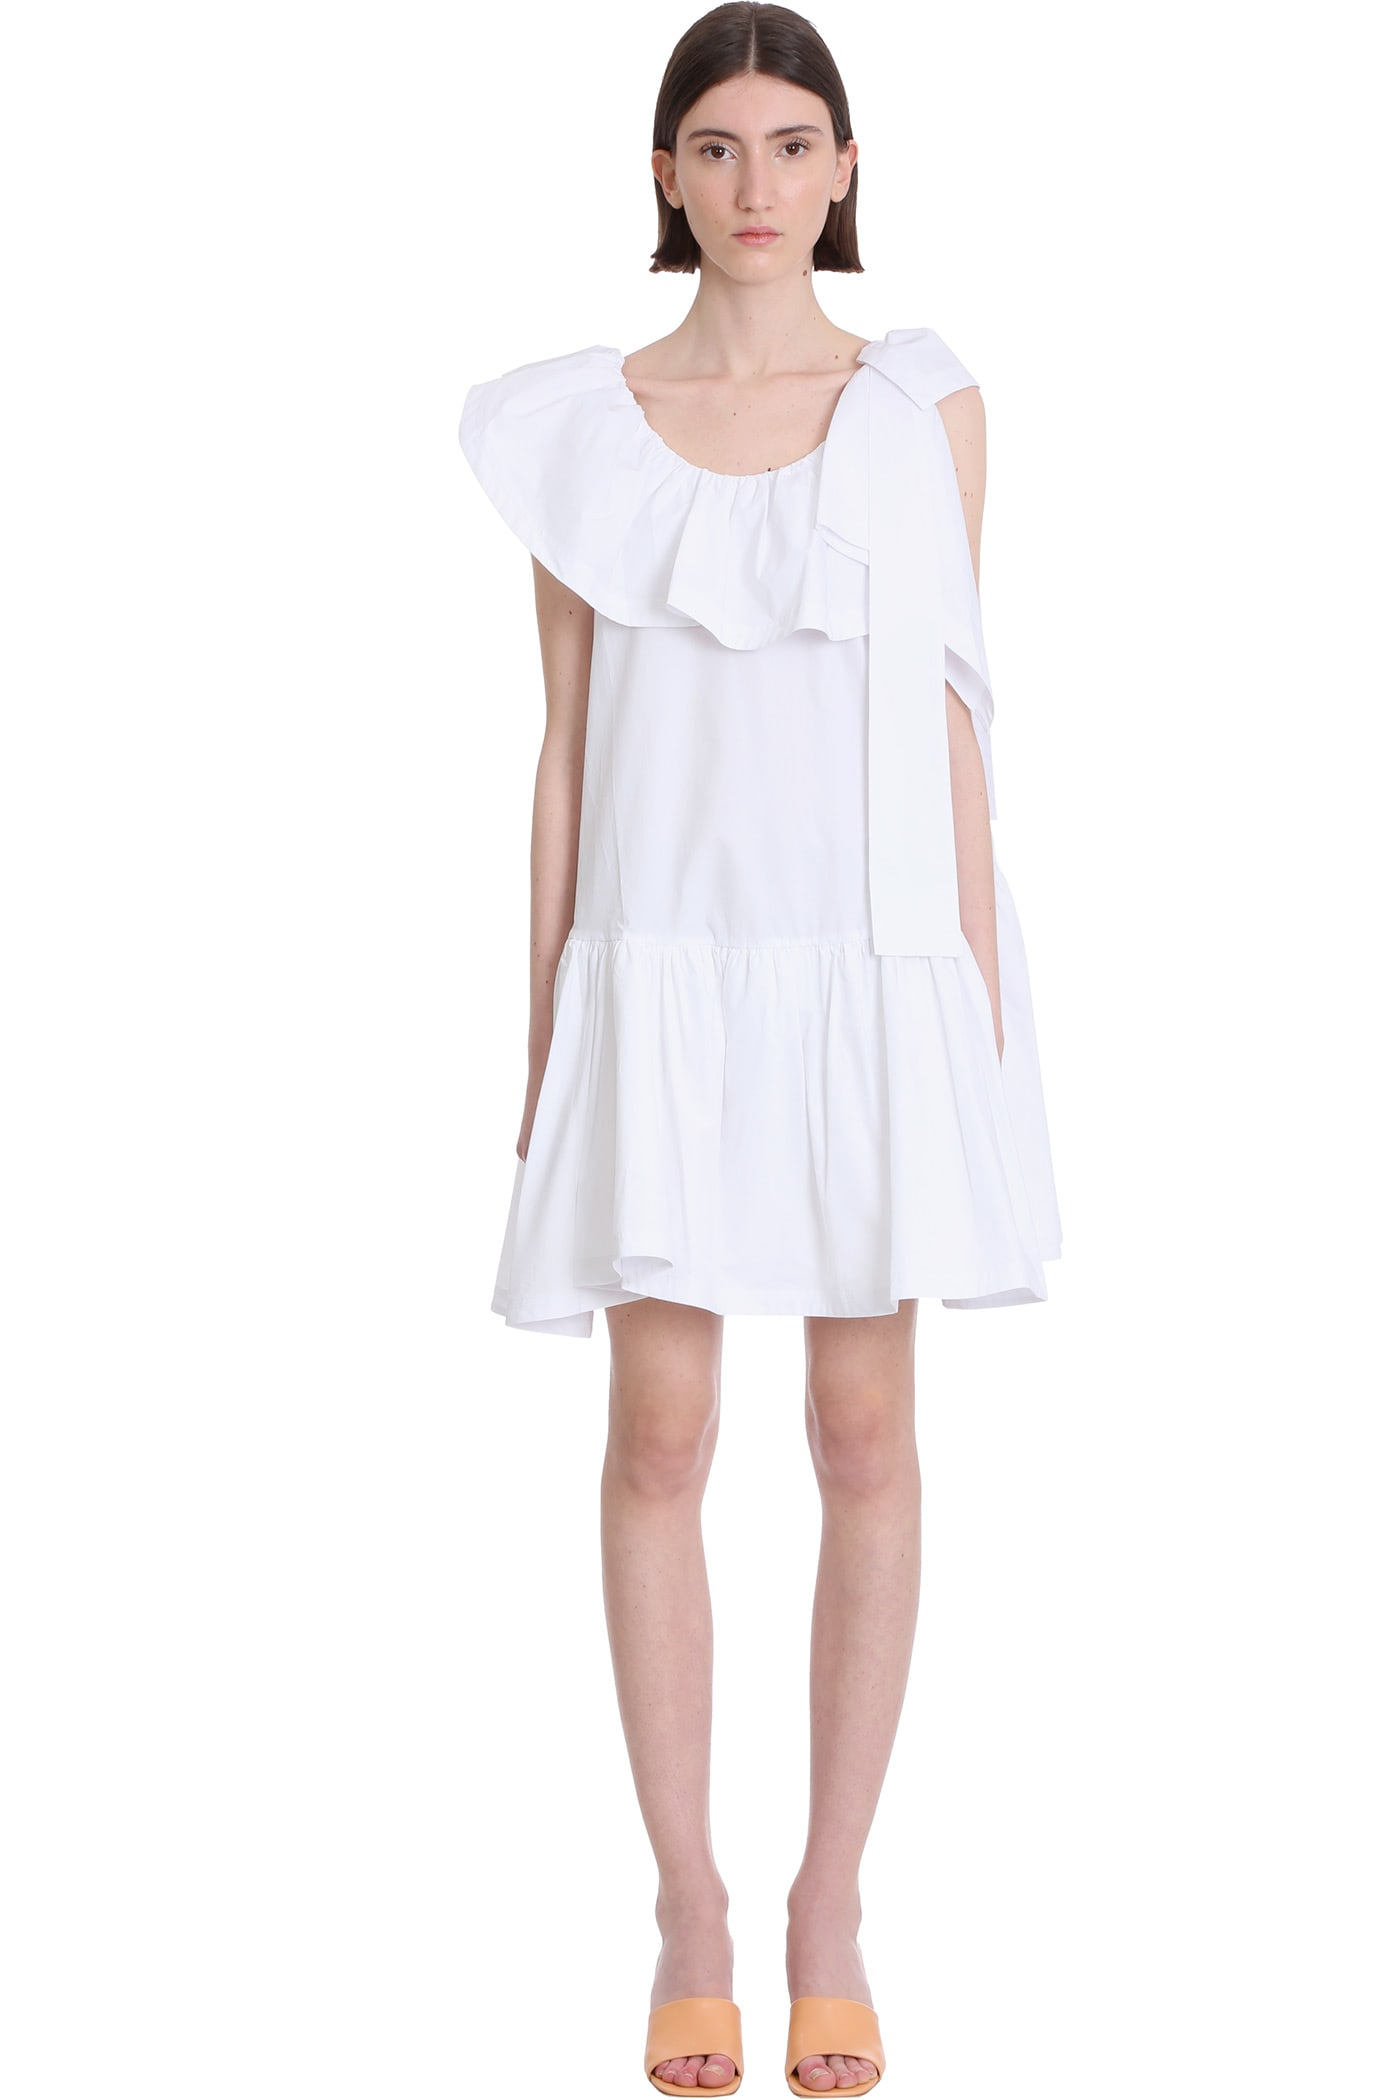 Buy 3.1 Phillip Lim Tent Dress In White Cotton online, shop 3.1 Phillip Lim with free shipping